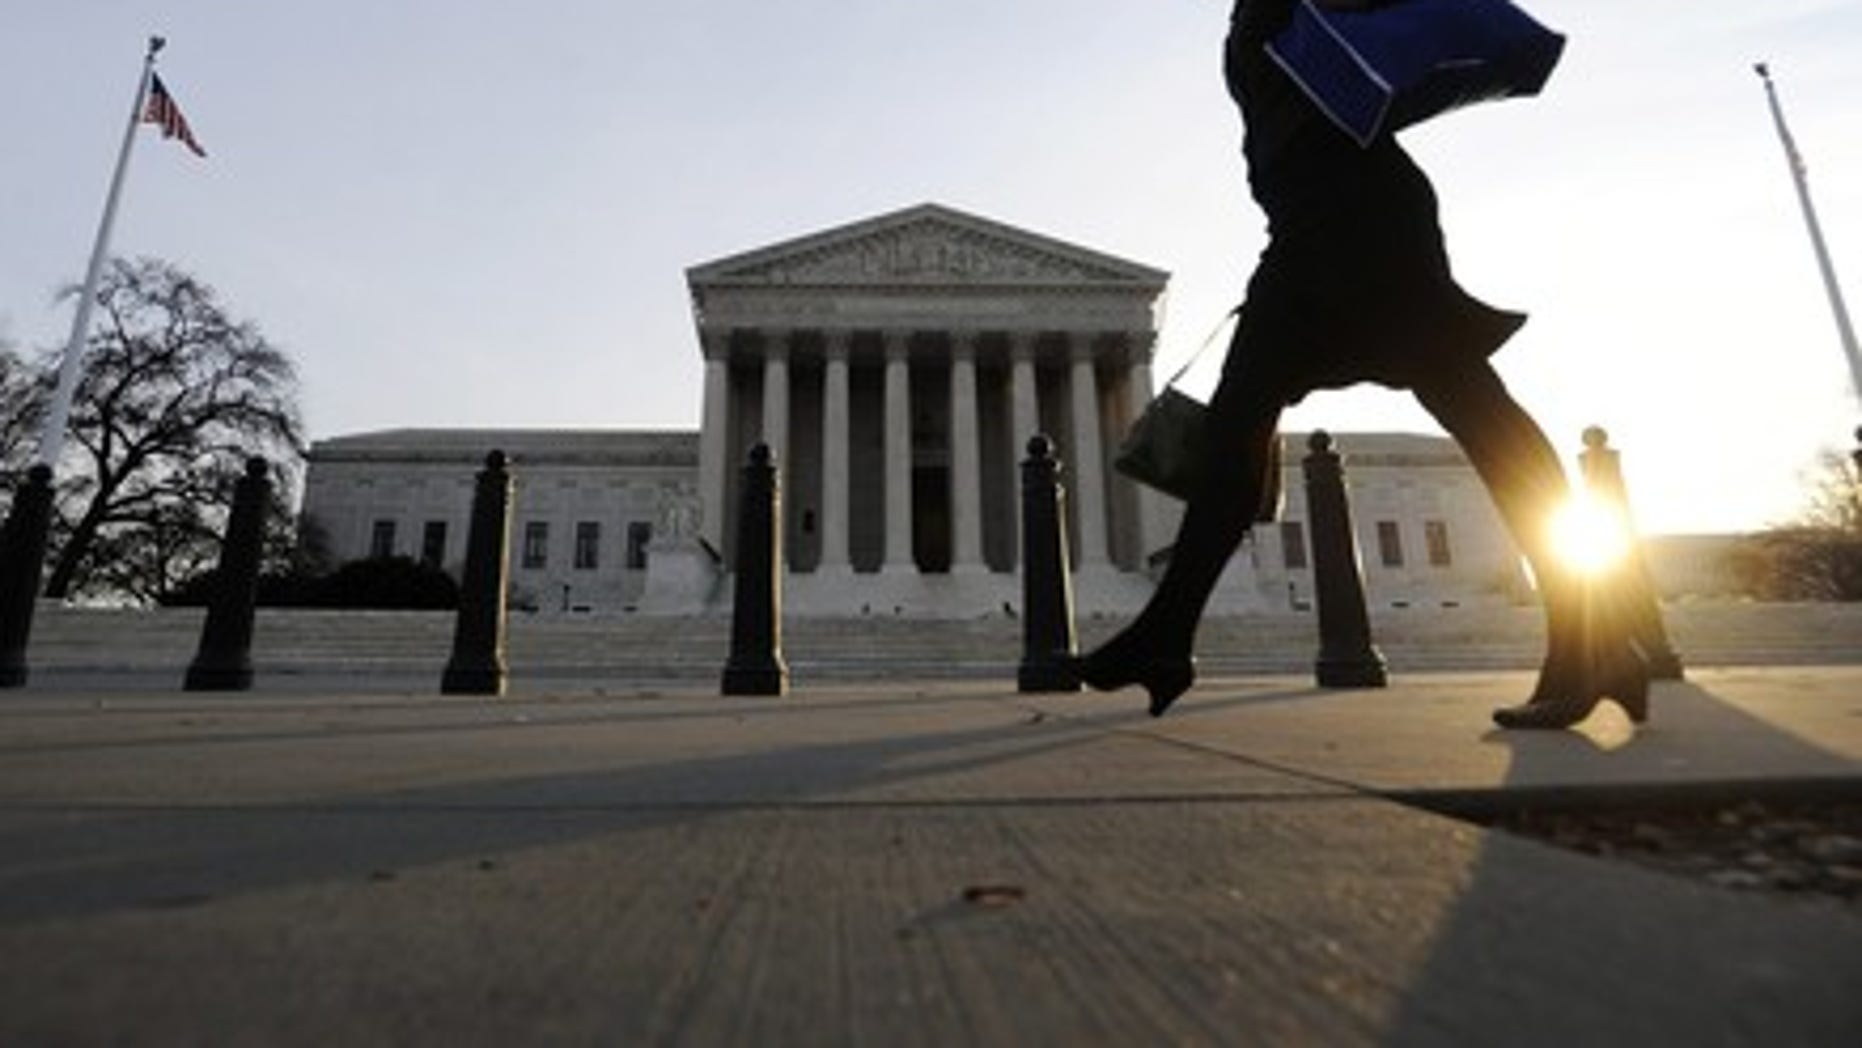 FILE -- A pedestrian walks past the US Supreme Court building in Washington. (REUTERS)